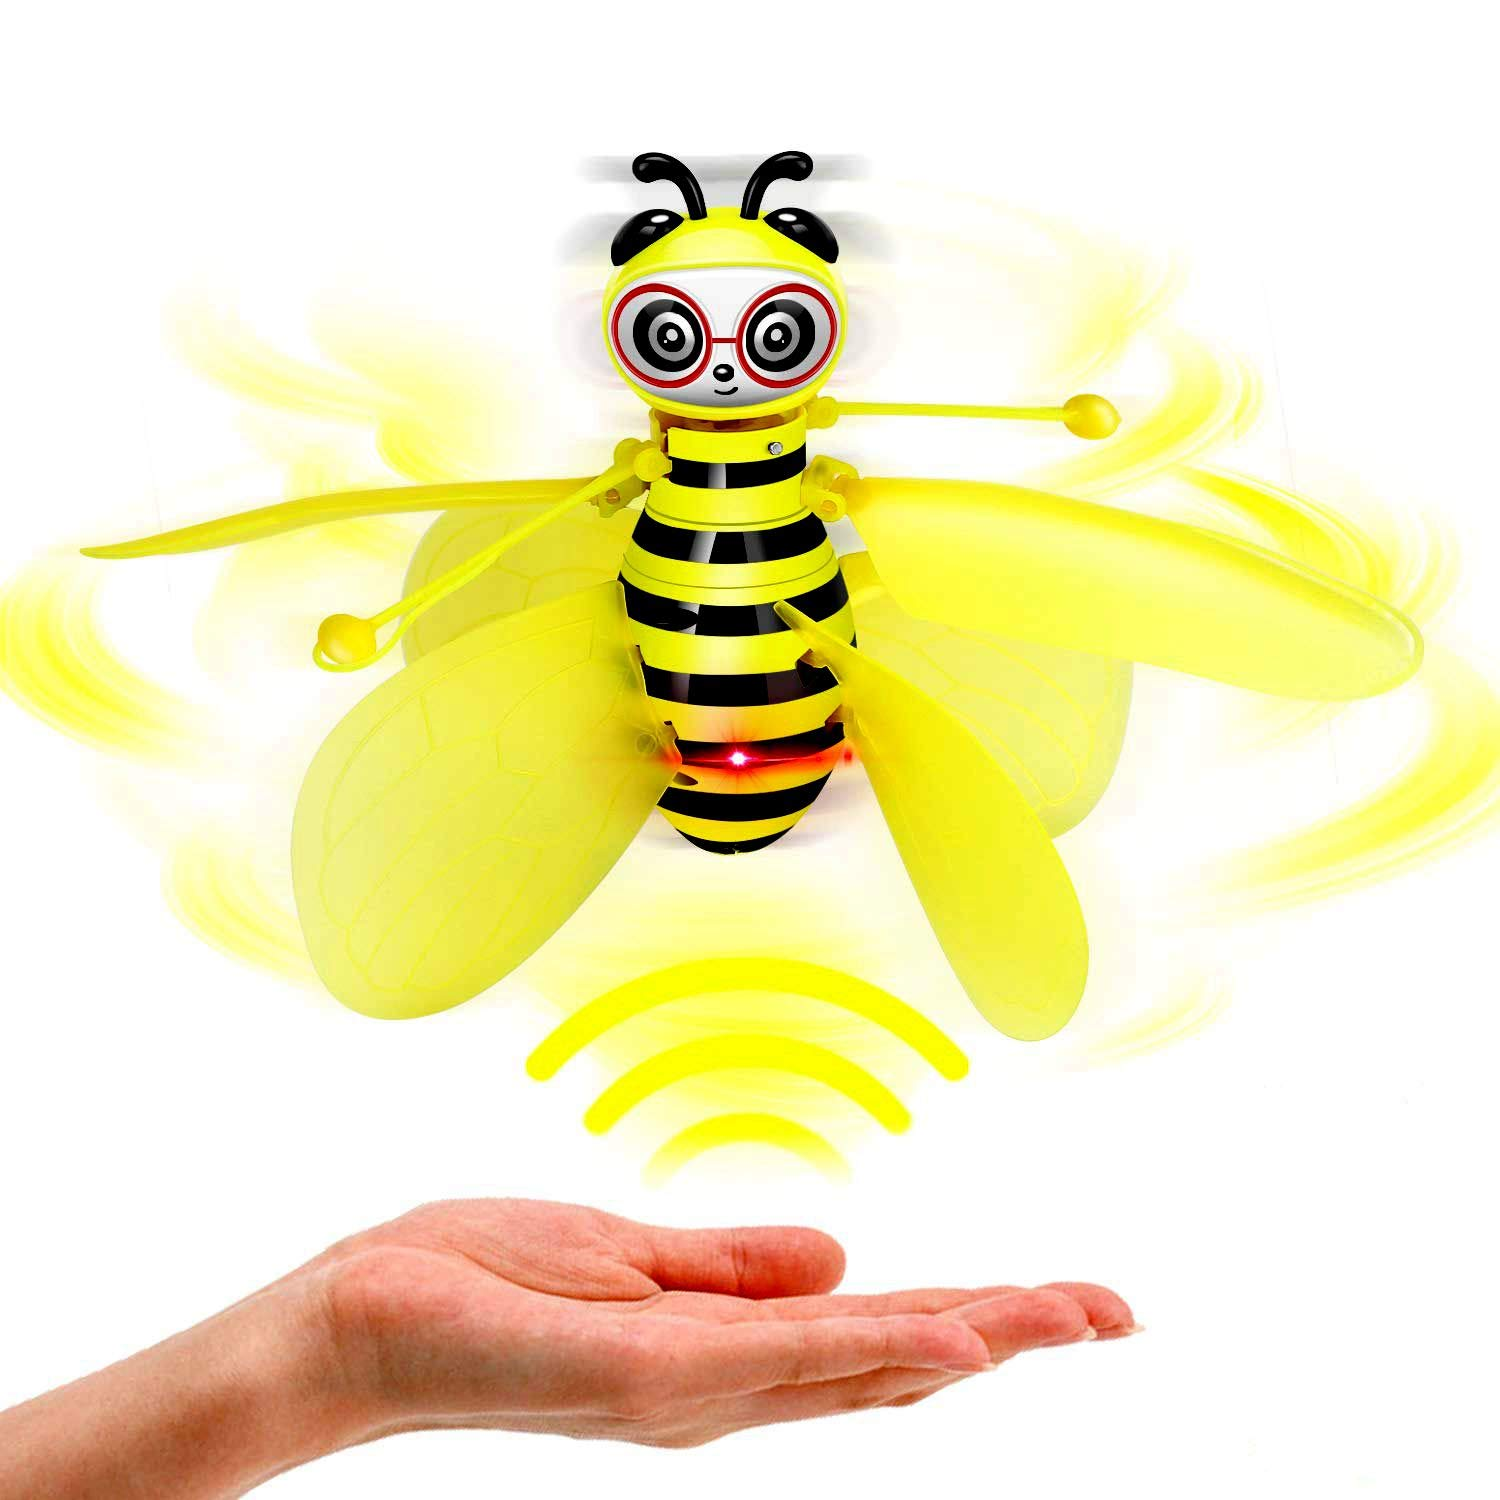 FLQ123 Flying Toys, bee Gravity Sensing Aircraft, Hanging Helicopter Toys, Hand-Controlled bee Helicopters, Birthday Holiday, 4 Years Old Children, Men and Women app by FLQ123